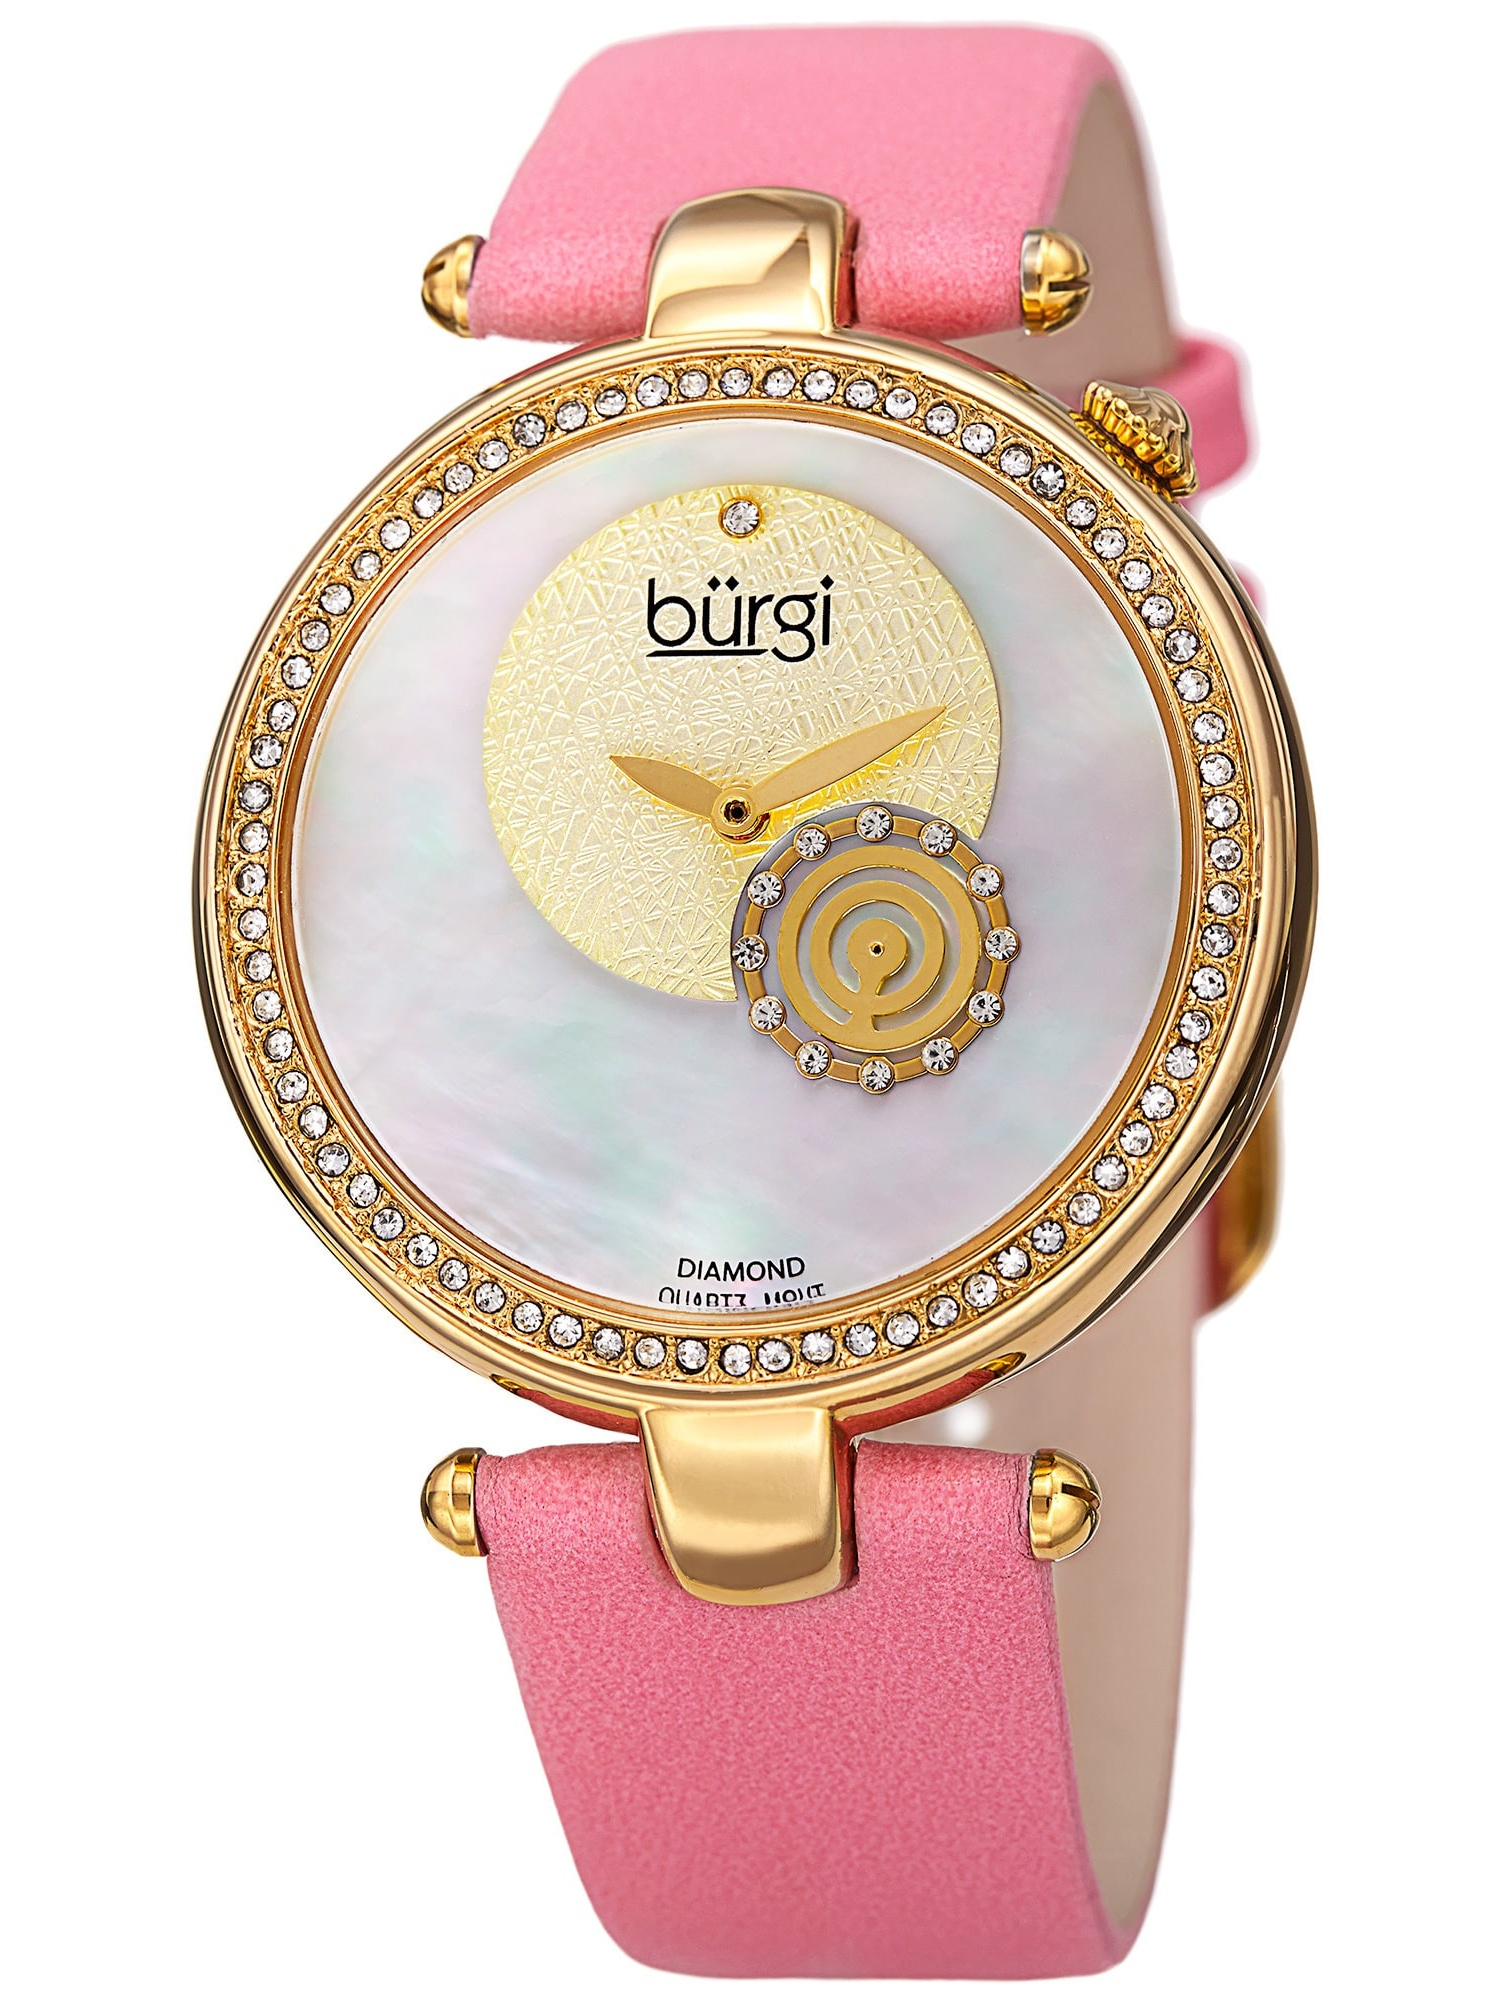 Women's Sparkling Diamond Crystal Gold-Tone/ Pink Leather Strap Watch with FREE Bangle